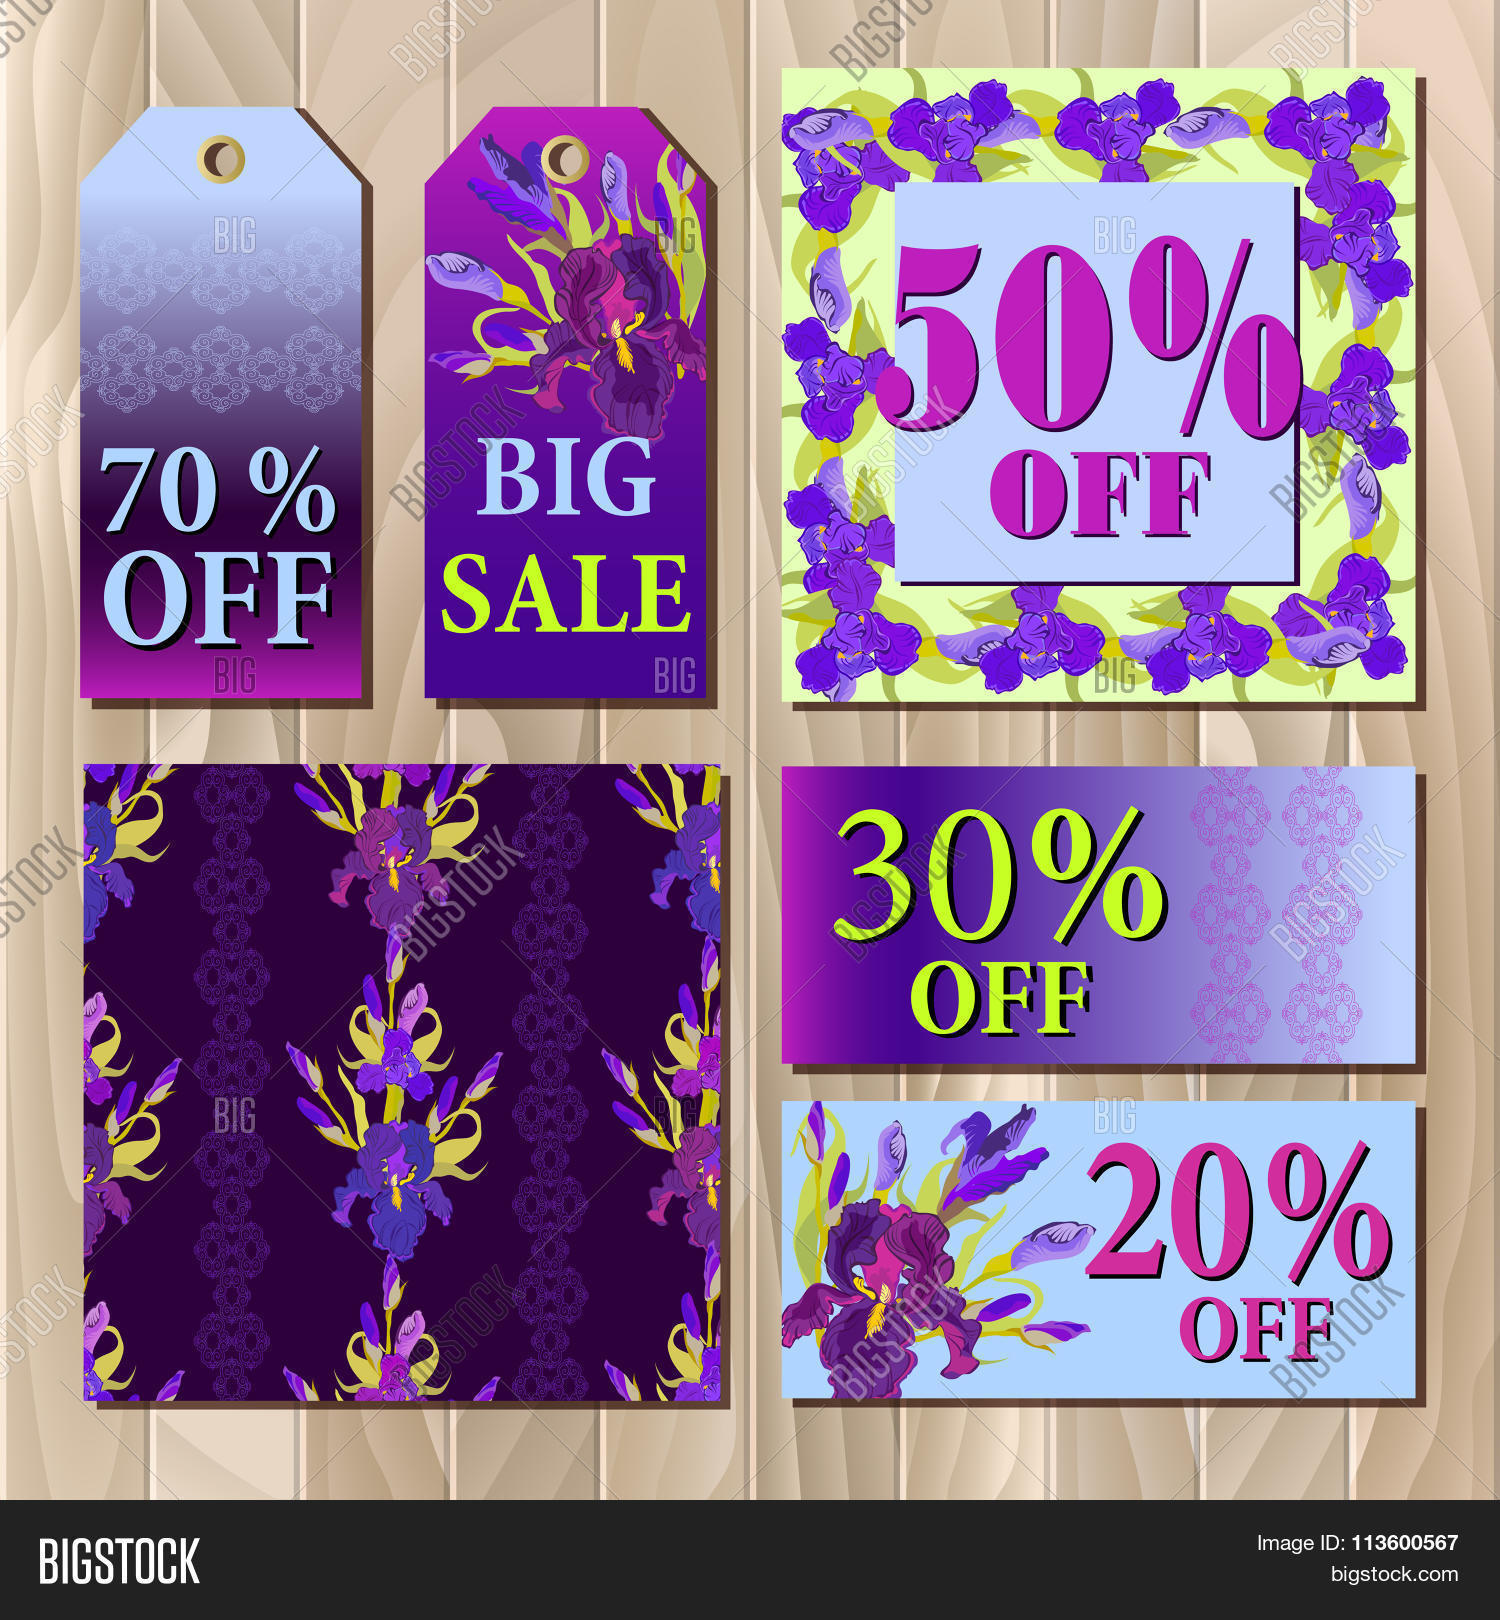 Big Sale Printable Vector Photo Free Trial Bigstock